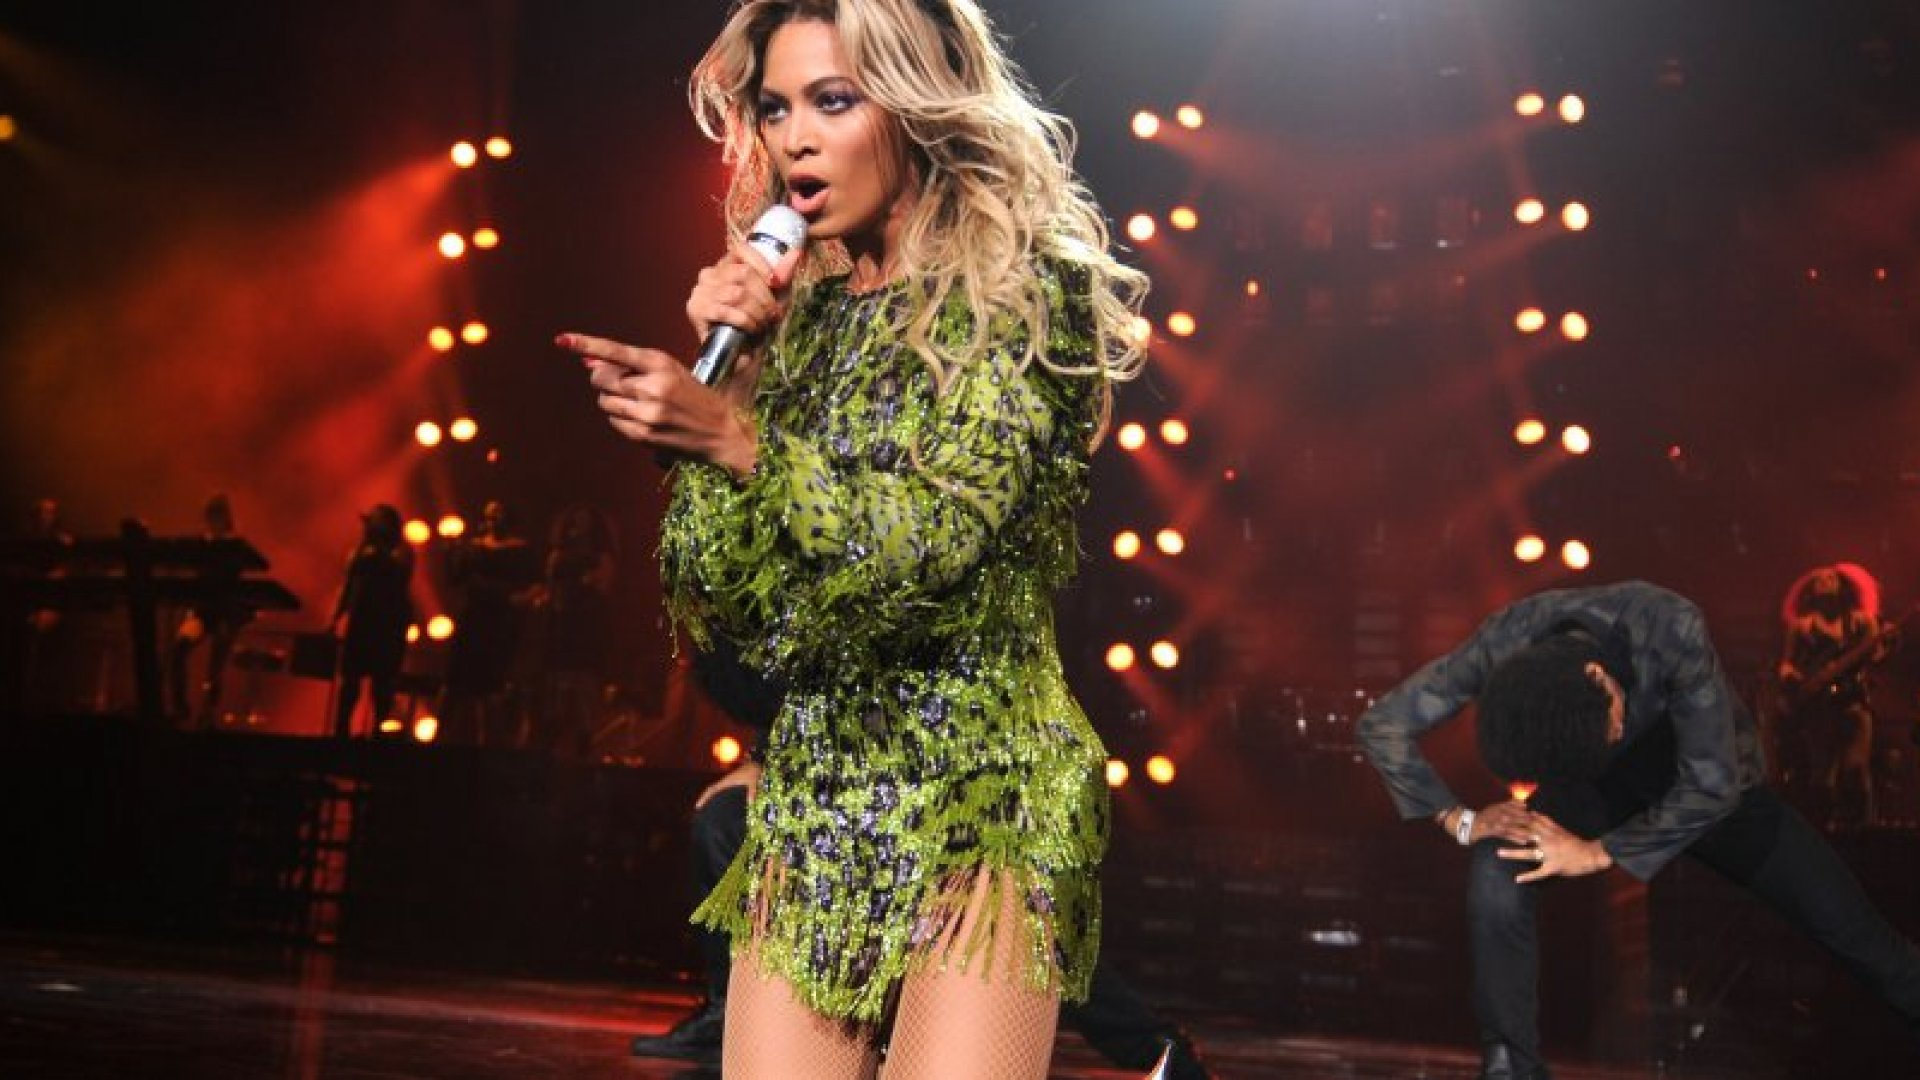 Entertainer Beyonce performs on stage during 'The Mrs. Carter Show World Tour' at the Barclays Center on December 22, 2013 in New York, New York.  (Photo by Kevin Mazur/WireImage for Parkwood Entertainment)